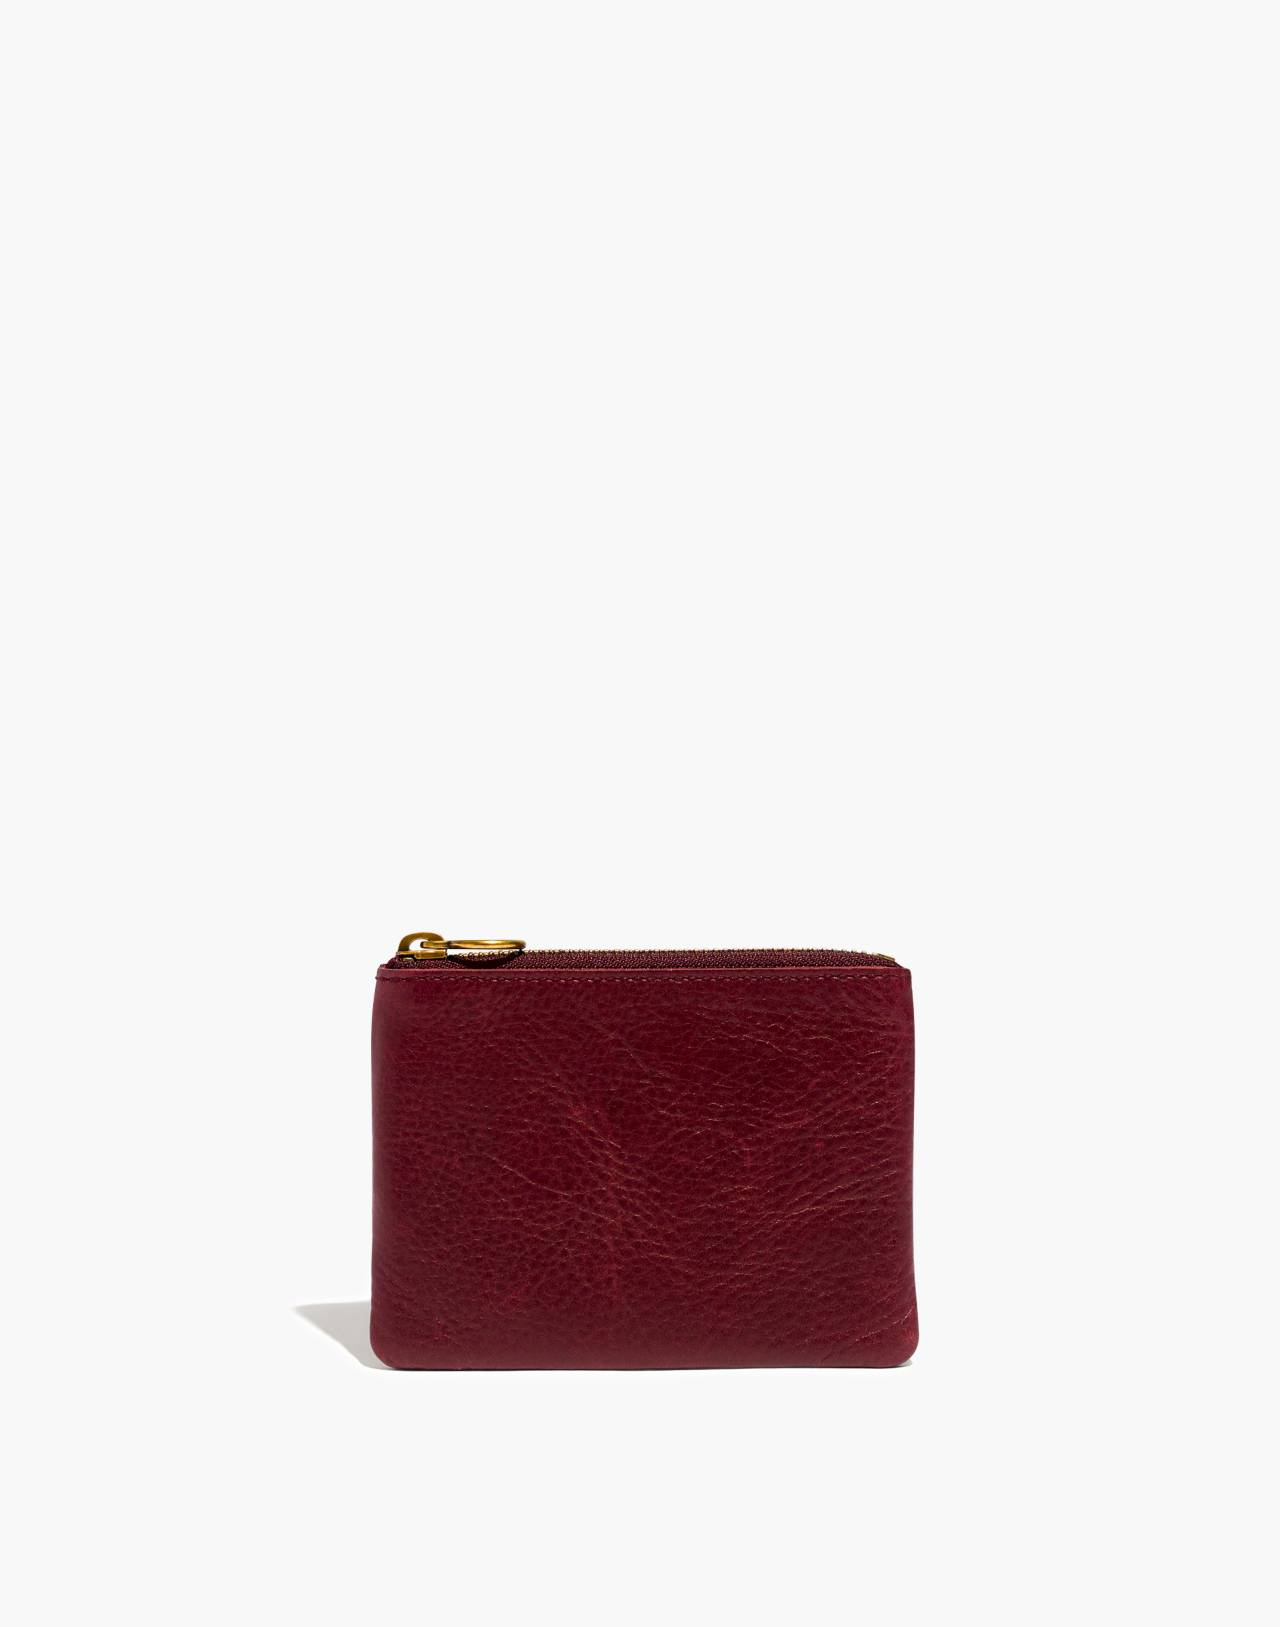 The Leather Pouch Wallet in dark cabernet image 1